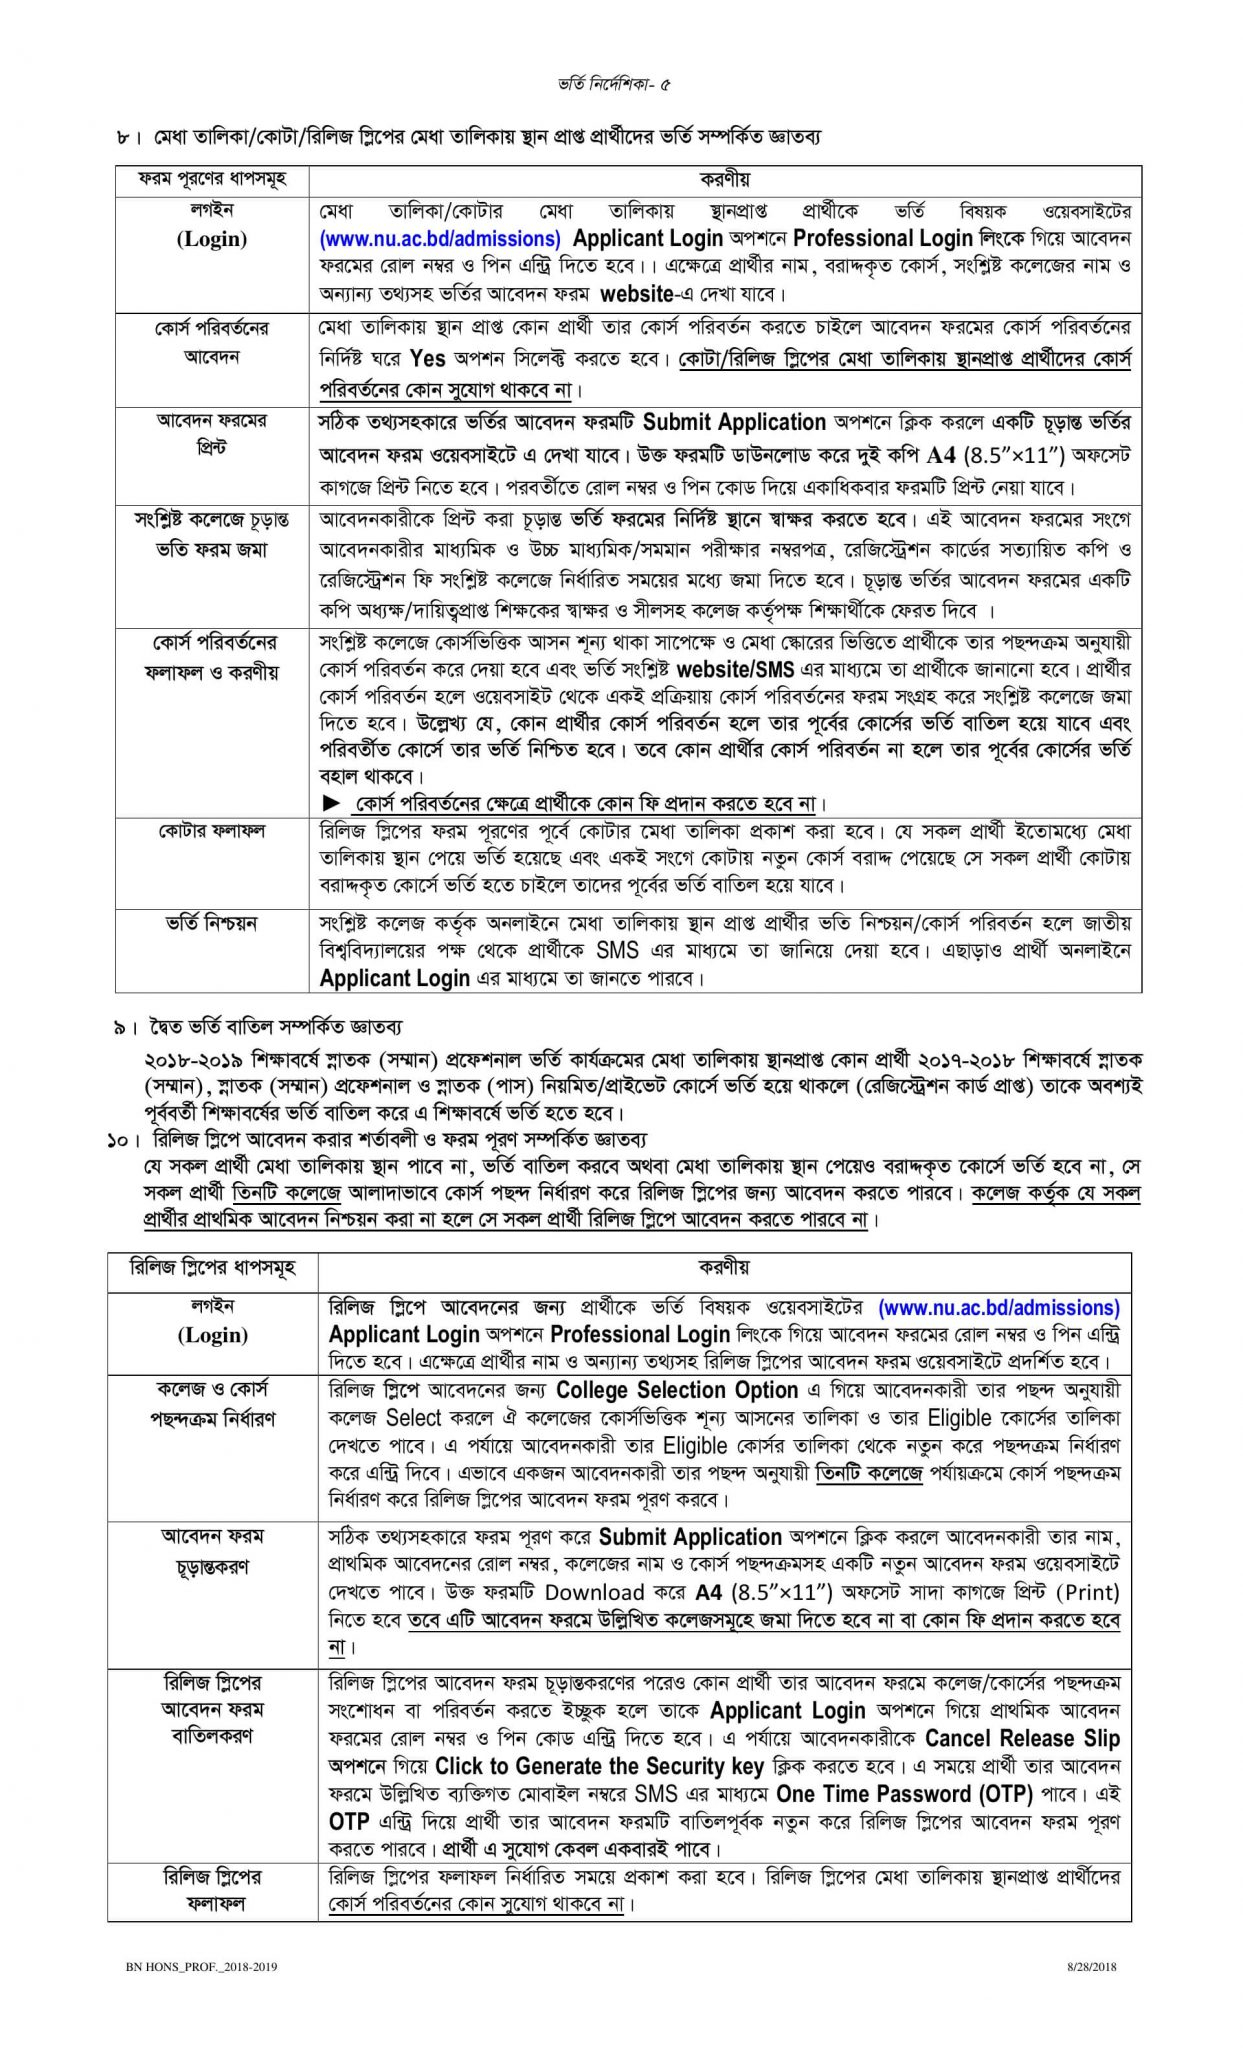 National University professional admission guideline-4